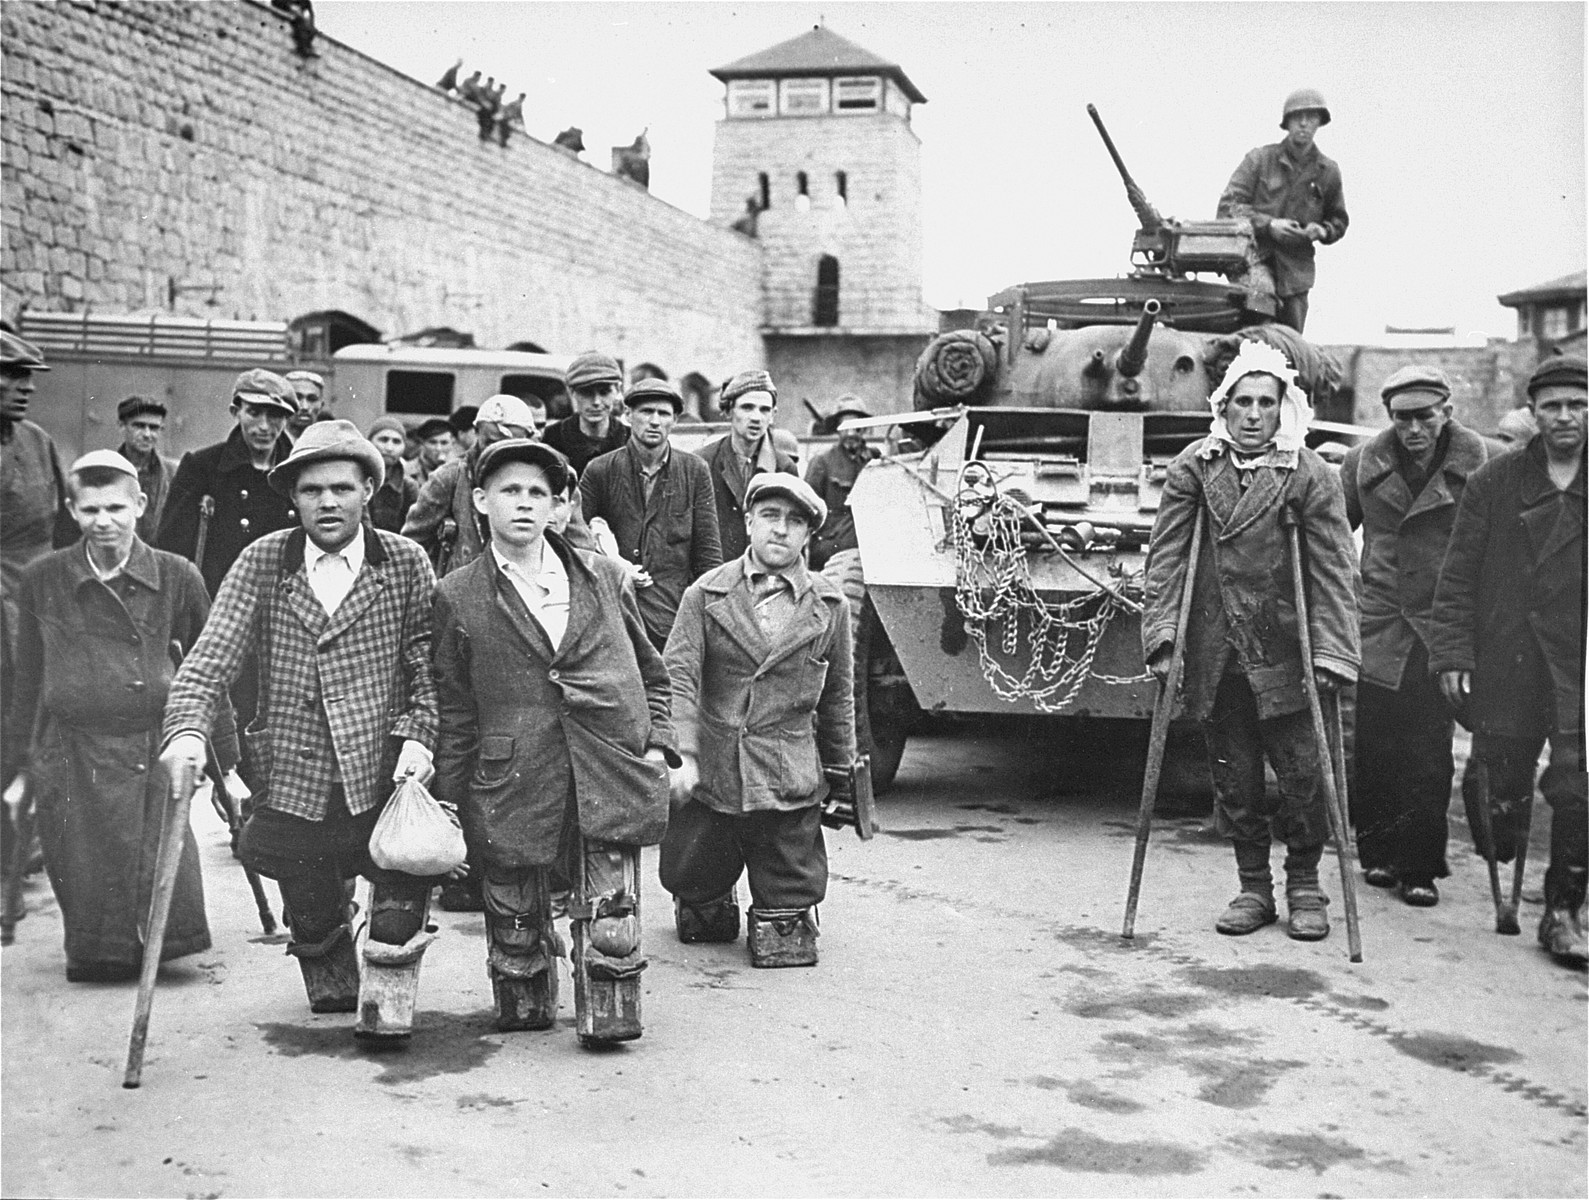 Disabled Polish and Russian survivors stand in front of a tank from the 11th Armored Division, Third U.S. Army, in the Mauthausen concentration camp.